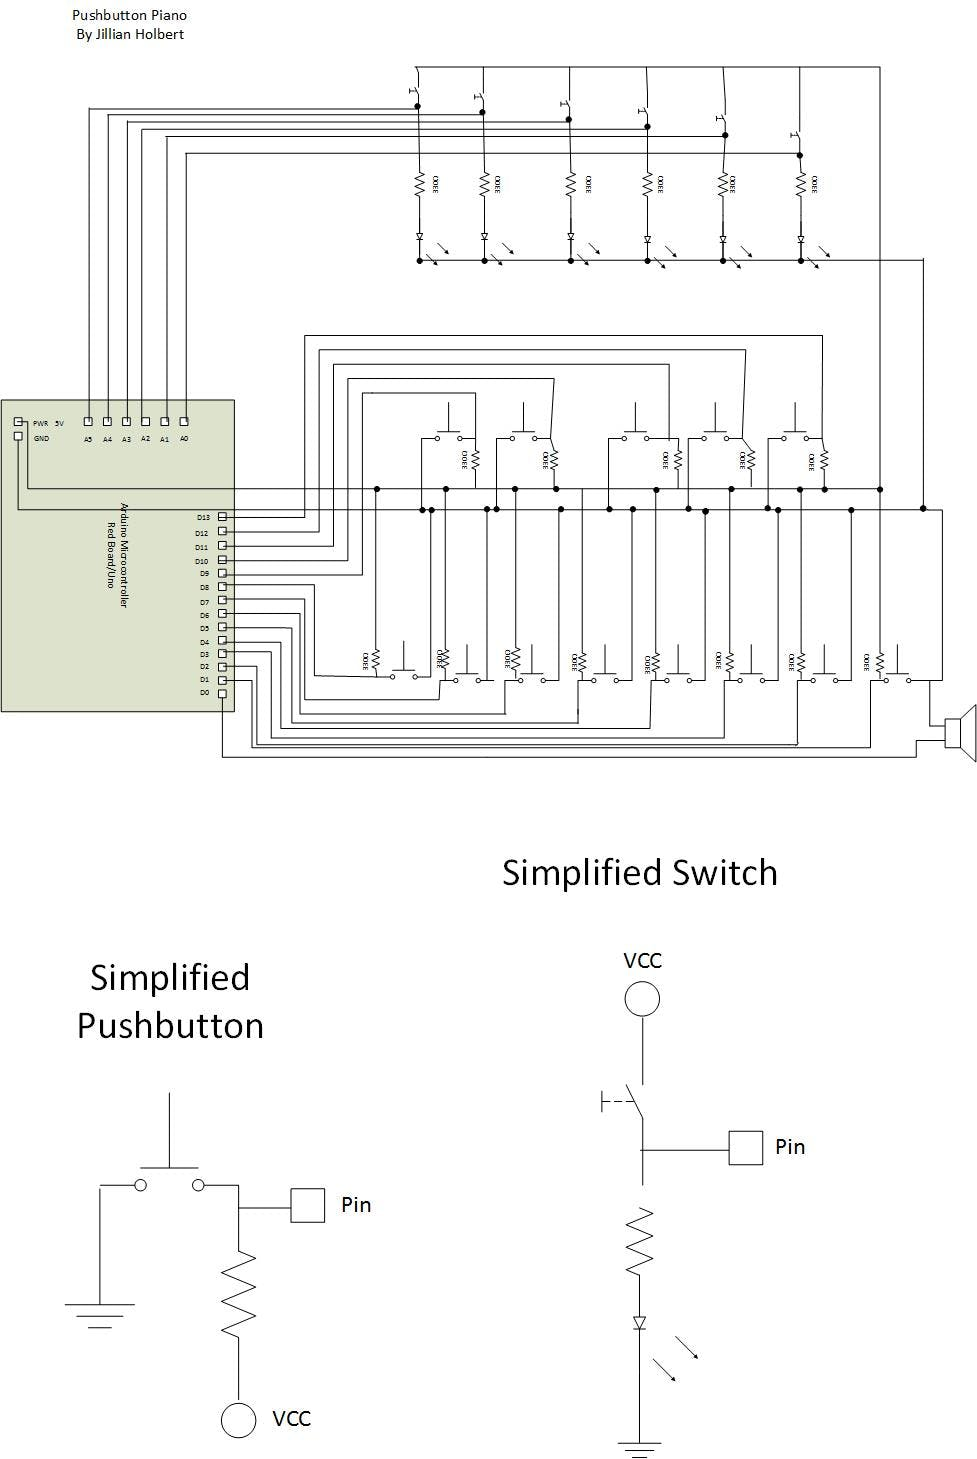 The schematic, created using Visio